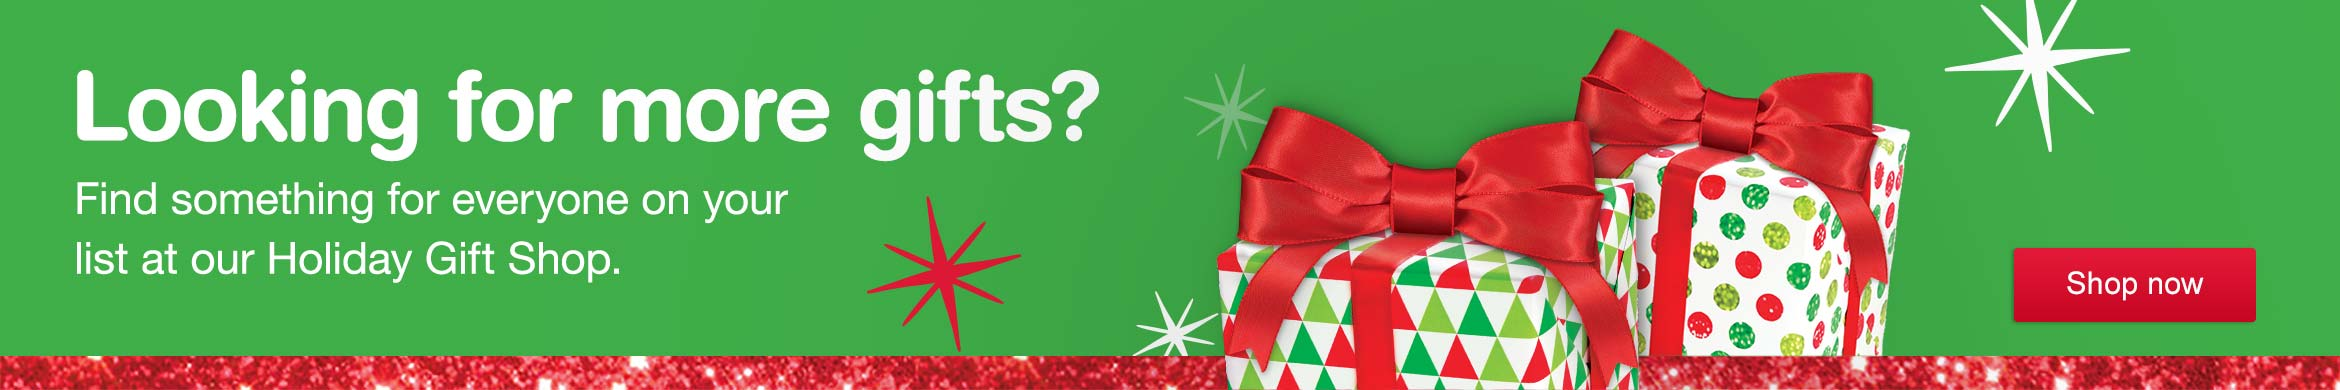 looking for more gifts find something for everyone on your list and make the holidays - Walgreens Christmas Commercial